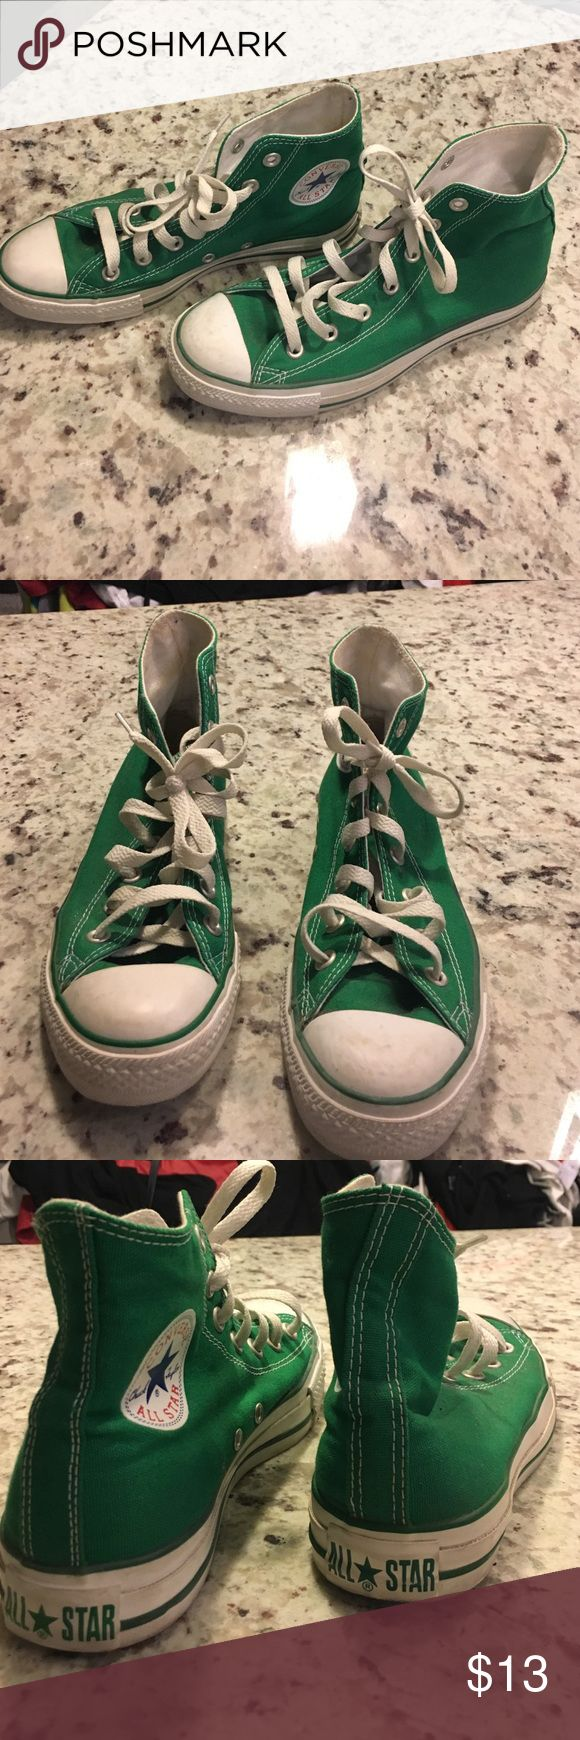 Green High Top Chucks - Converse size 8 worn a handful of times, good condition. Converse Shoes Sneakers